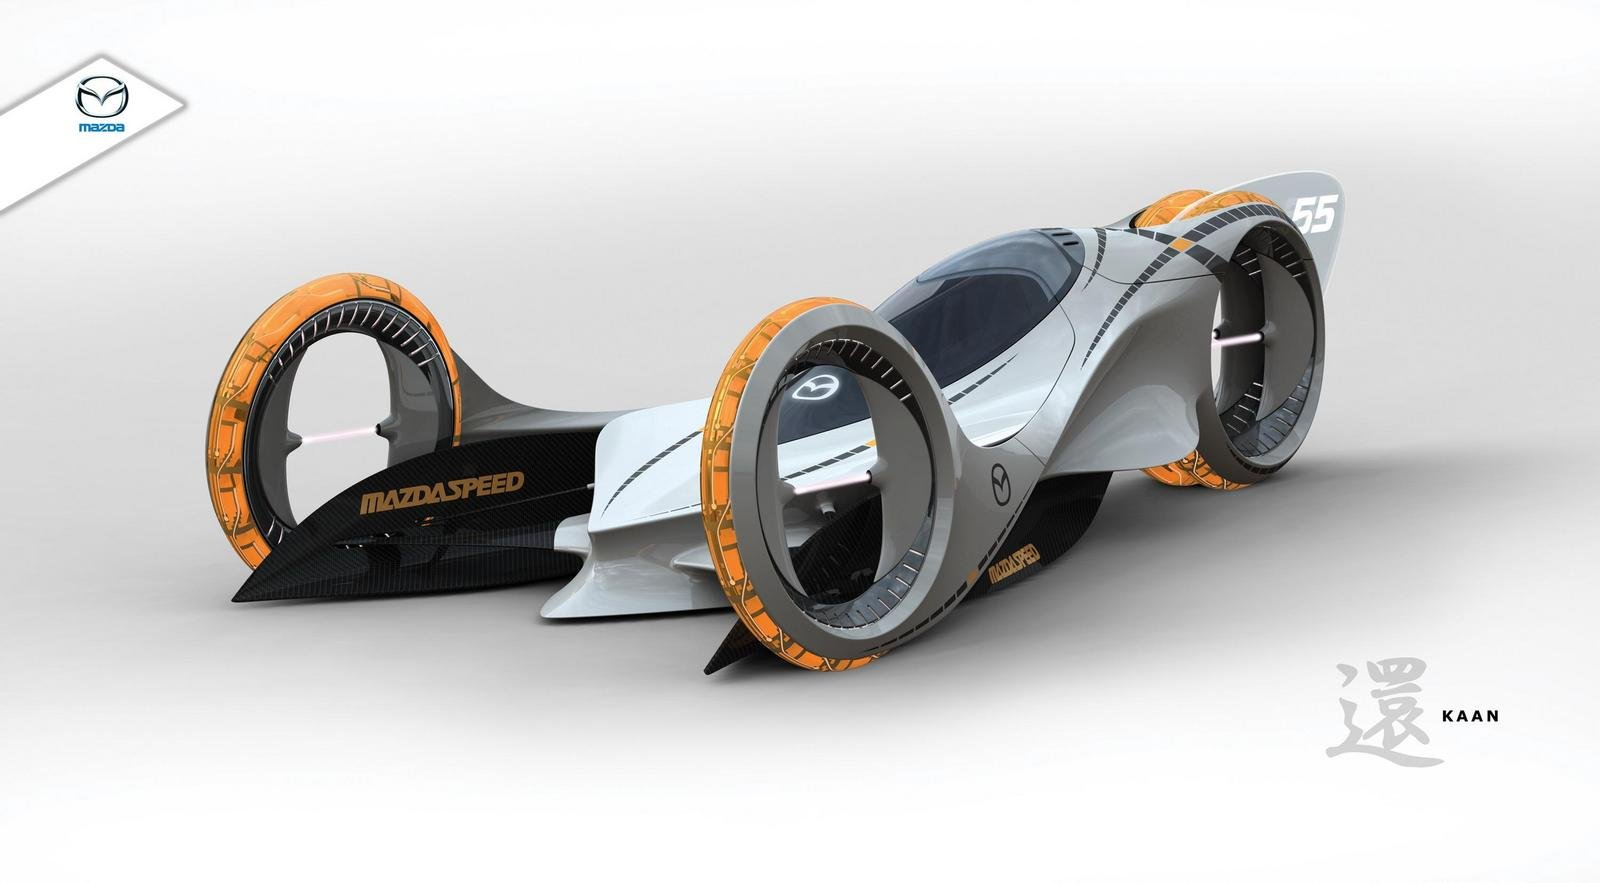 Mazda KAAN - Race Car Of The Future? - Picture 275072 ...